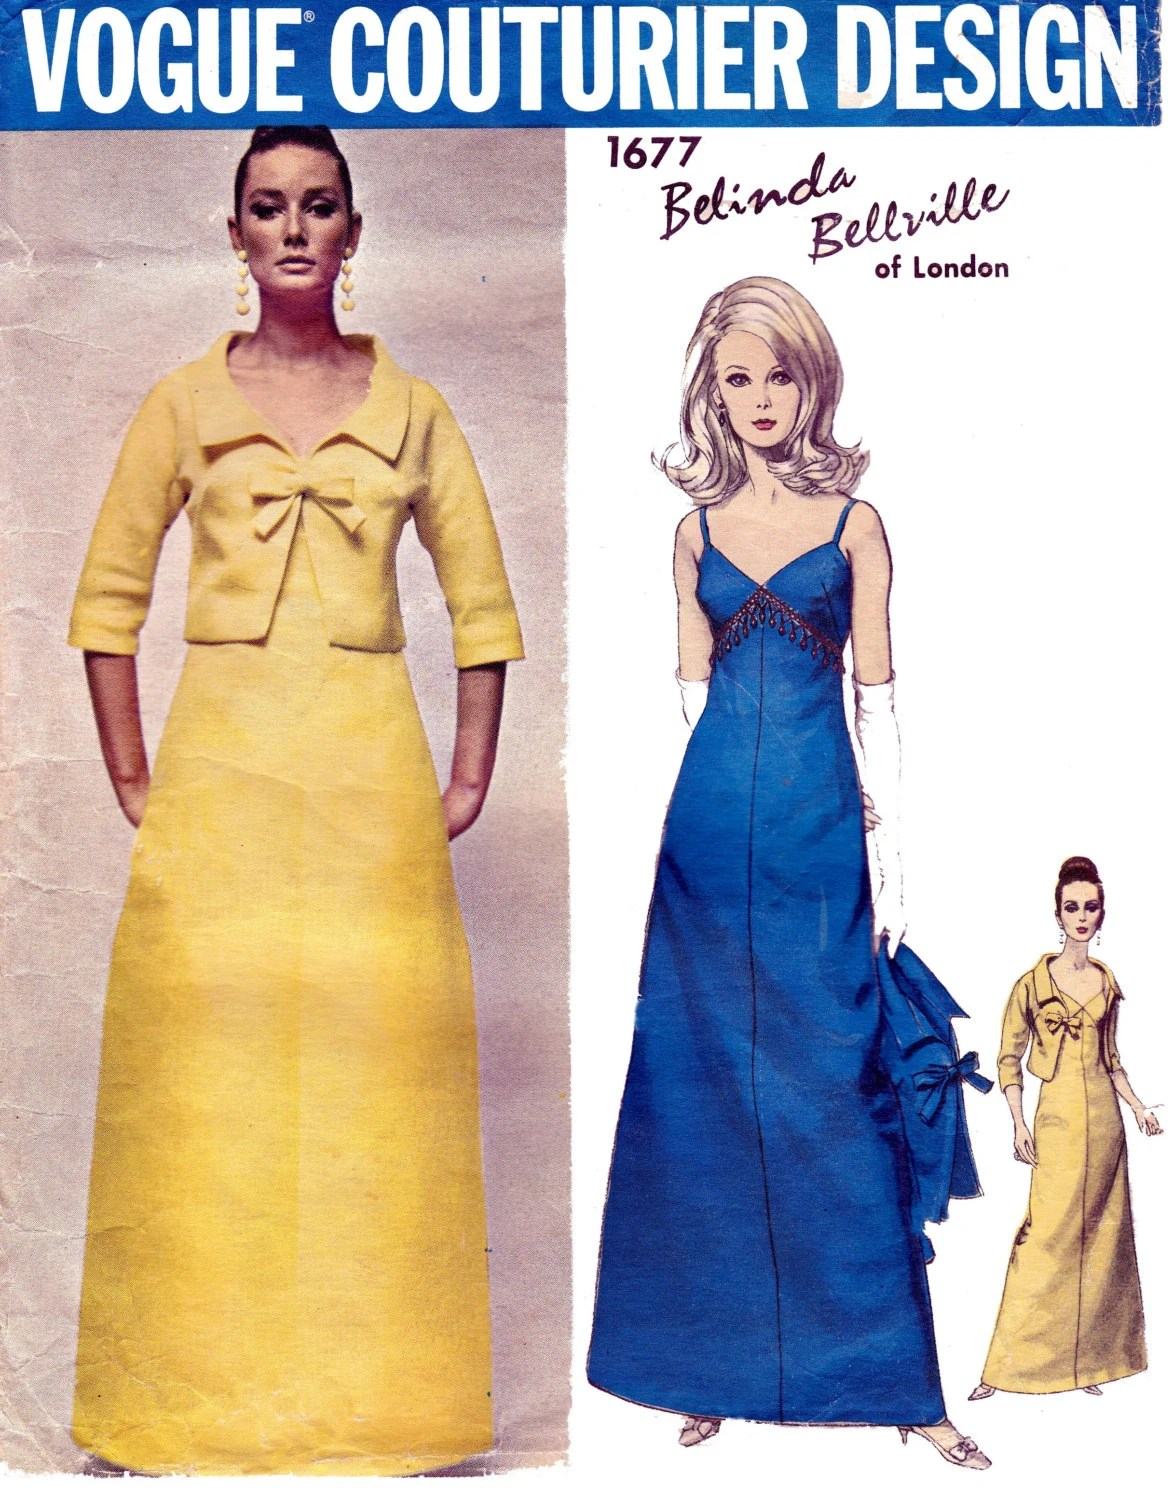 1960s Belinda Bellville evening ensemble pattern feat. Tania Mallet, Vogue Couturier Design 1677